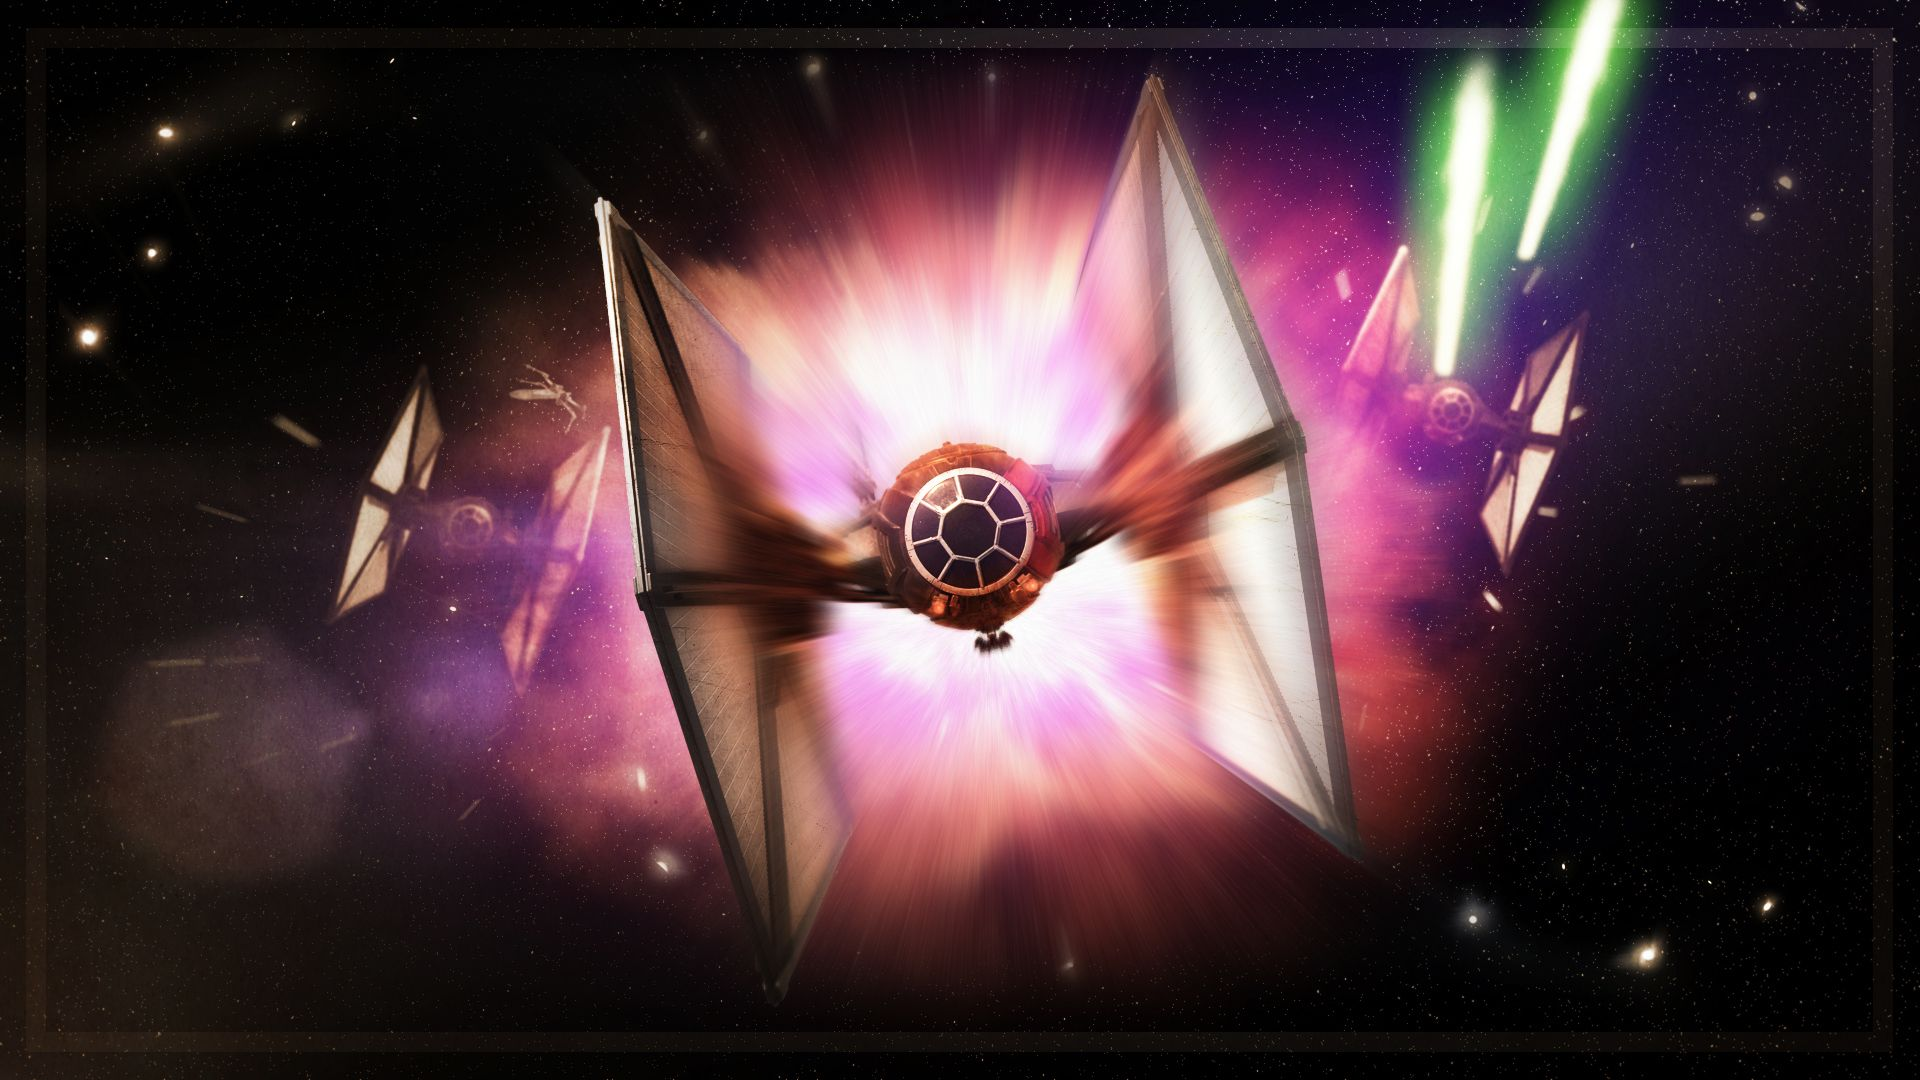 Star Wars Tie Fighter Wallpapers Top Free Star Wars Tie Fighter Backgrounds Wallpaperaccess